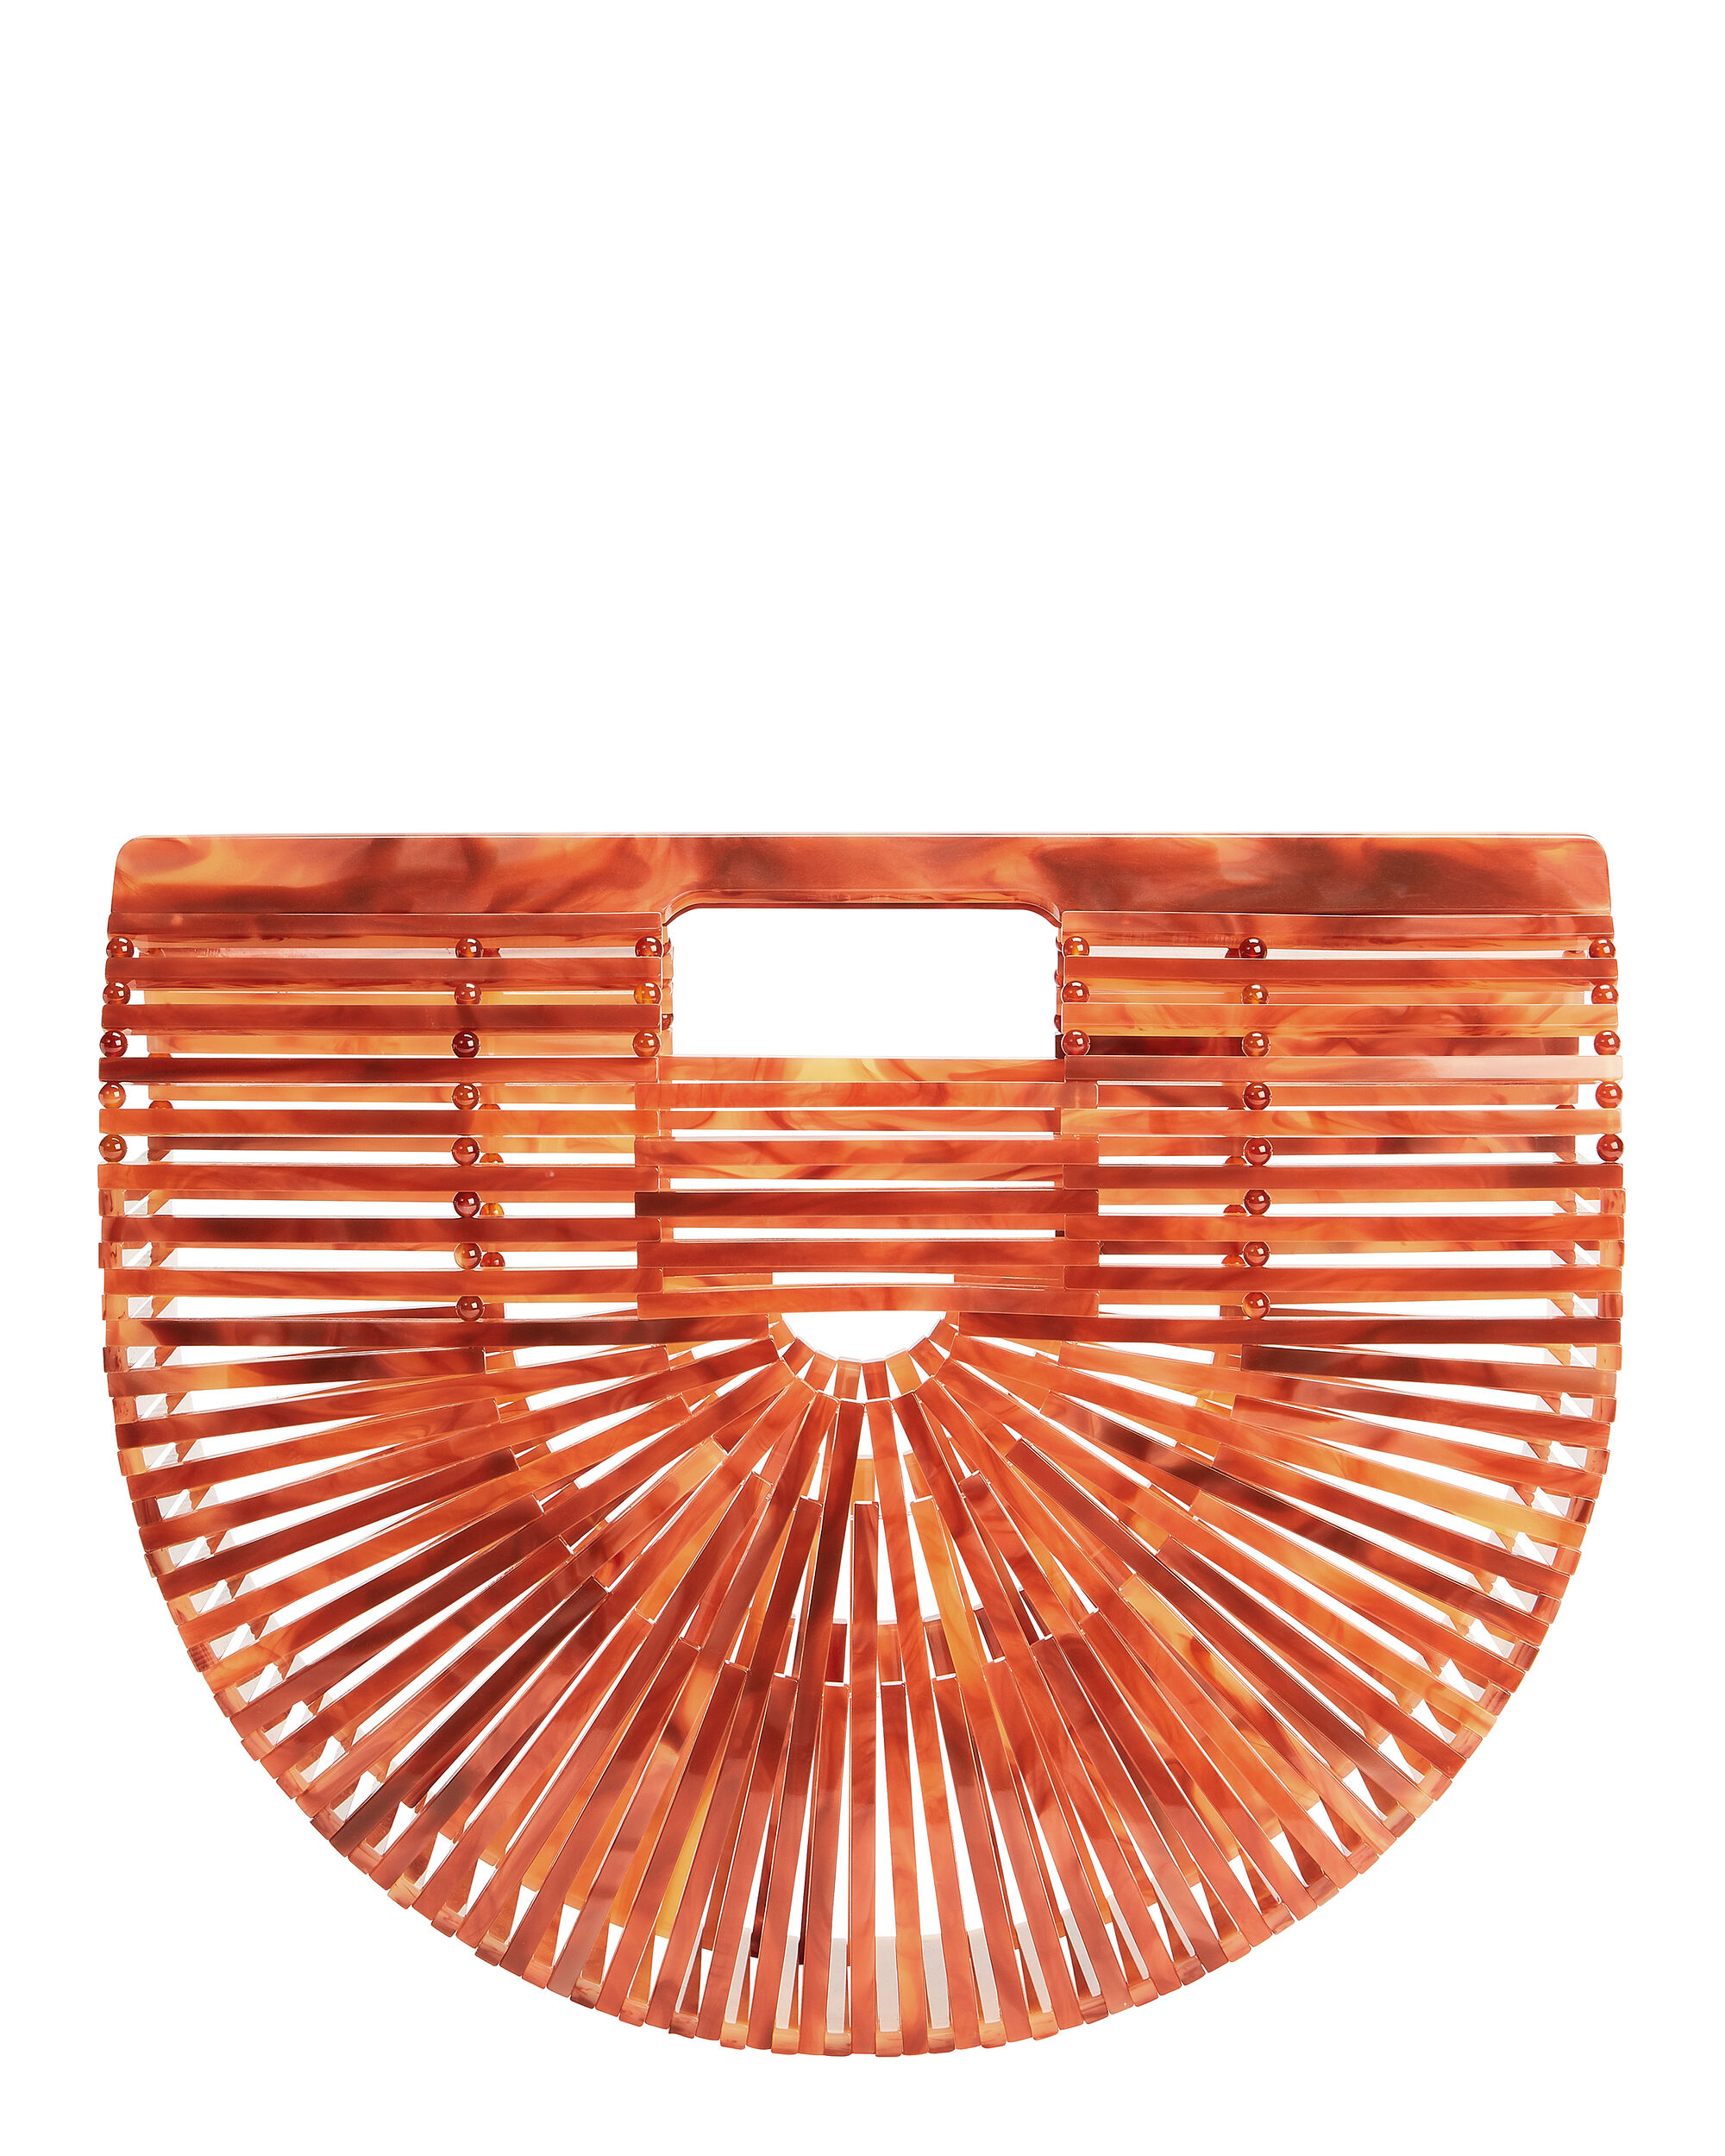 Ark Agate Small Clutch, BROWN, hi-res